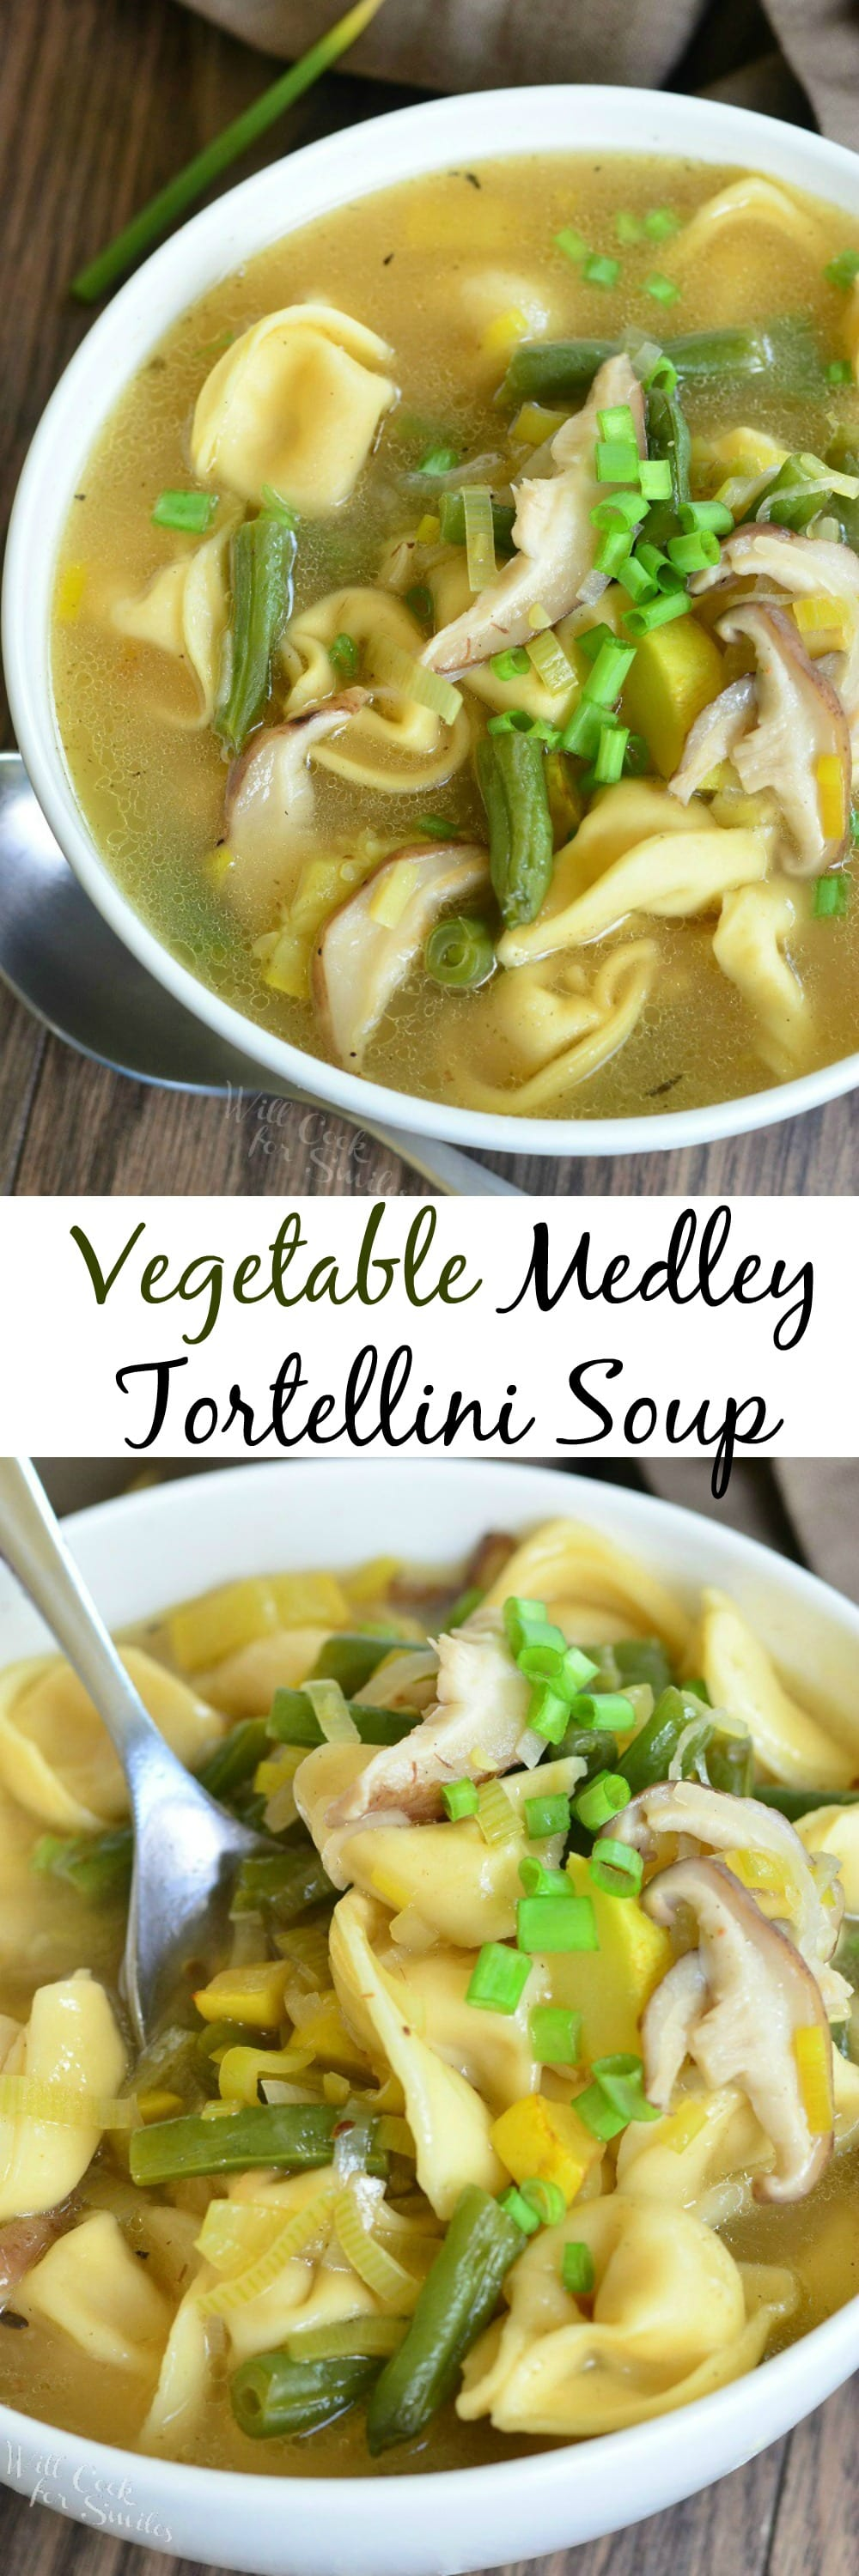 Vegetable Medley Tortellini Soup. Delicious flavor combination of veggies in a easy, satisfying soup that warms our body and soul. willcookforsmiles.com